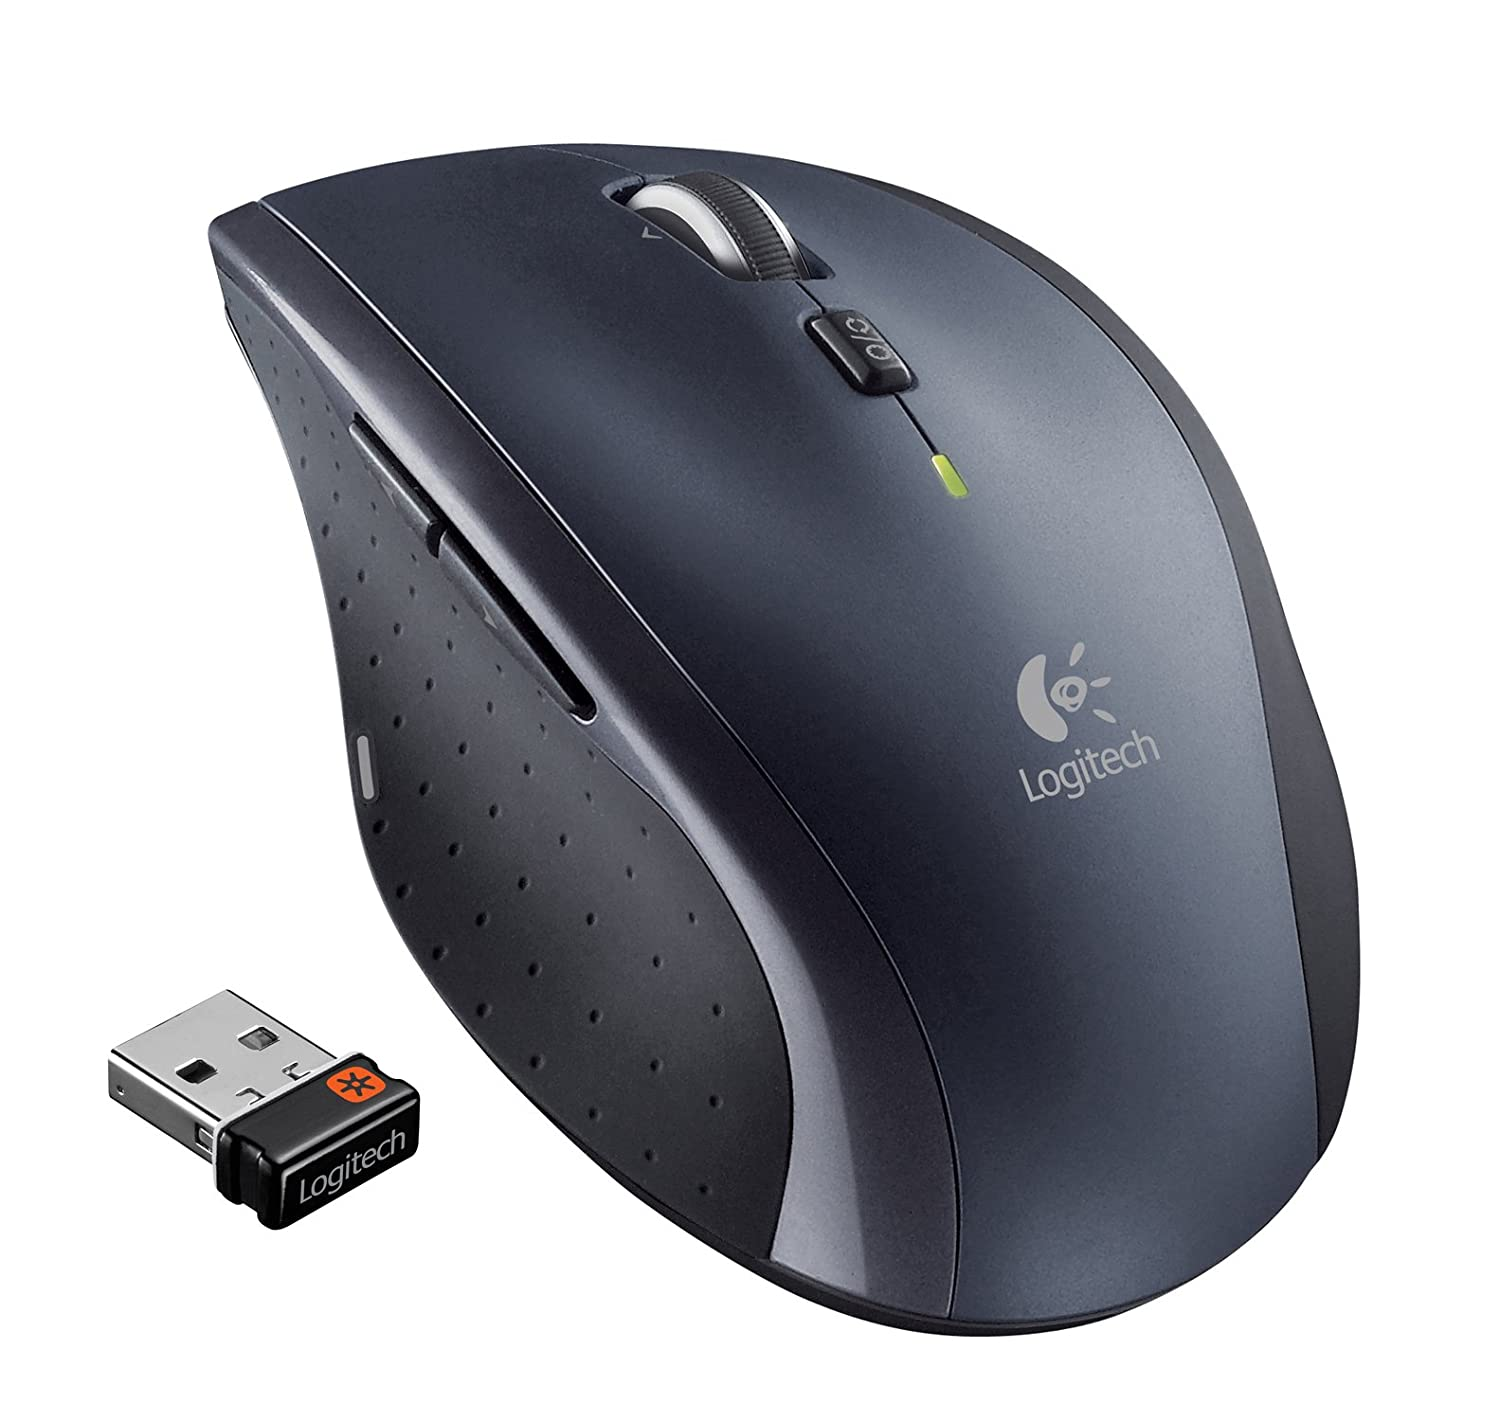 mouse for programming